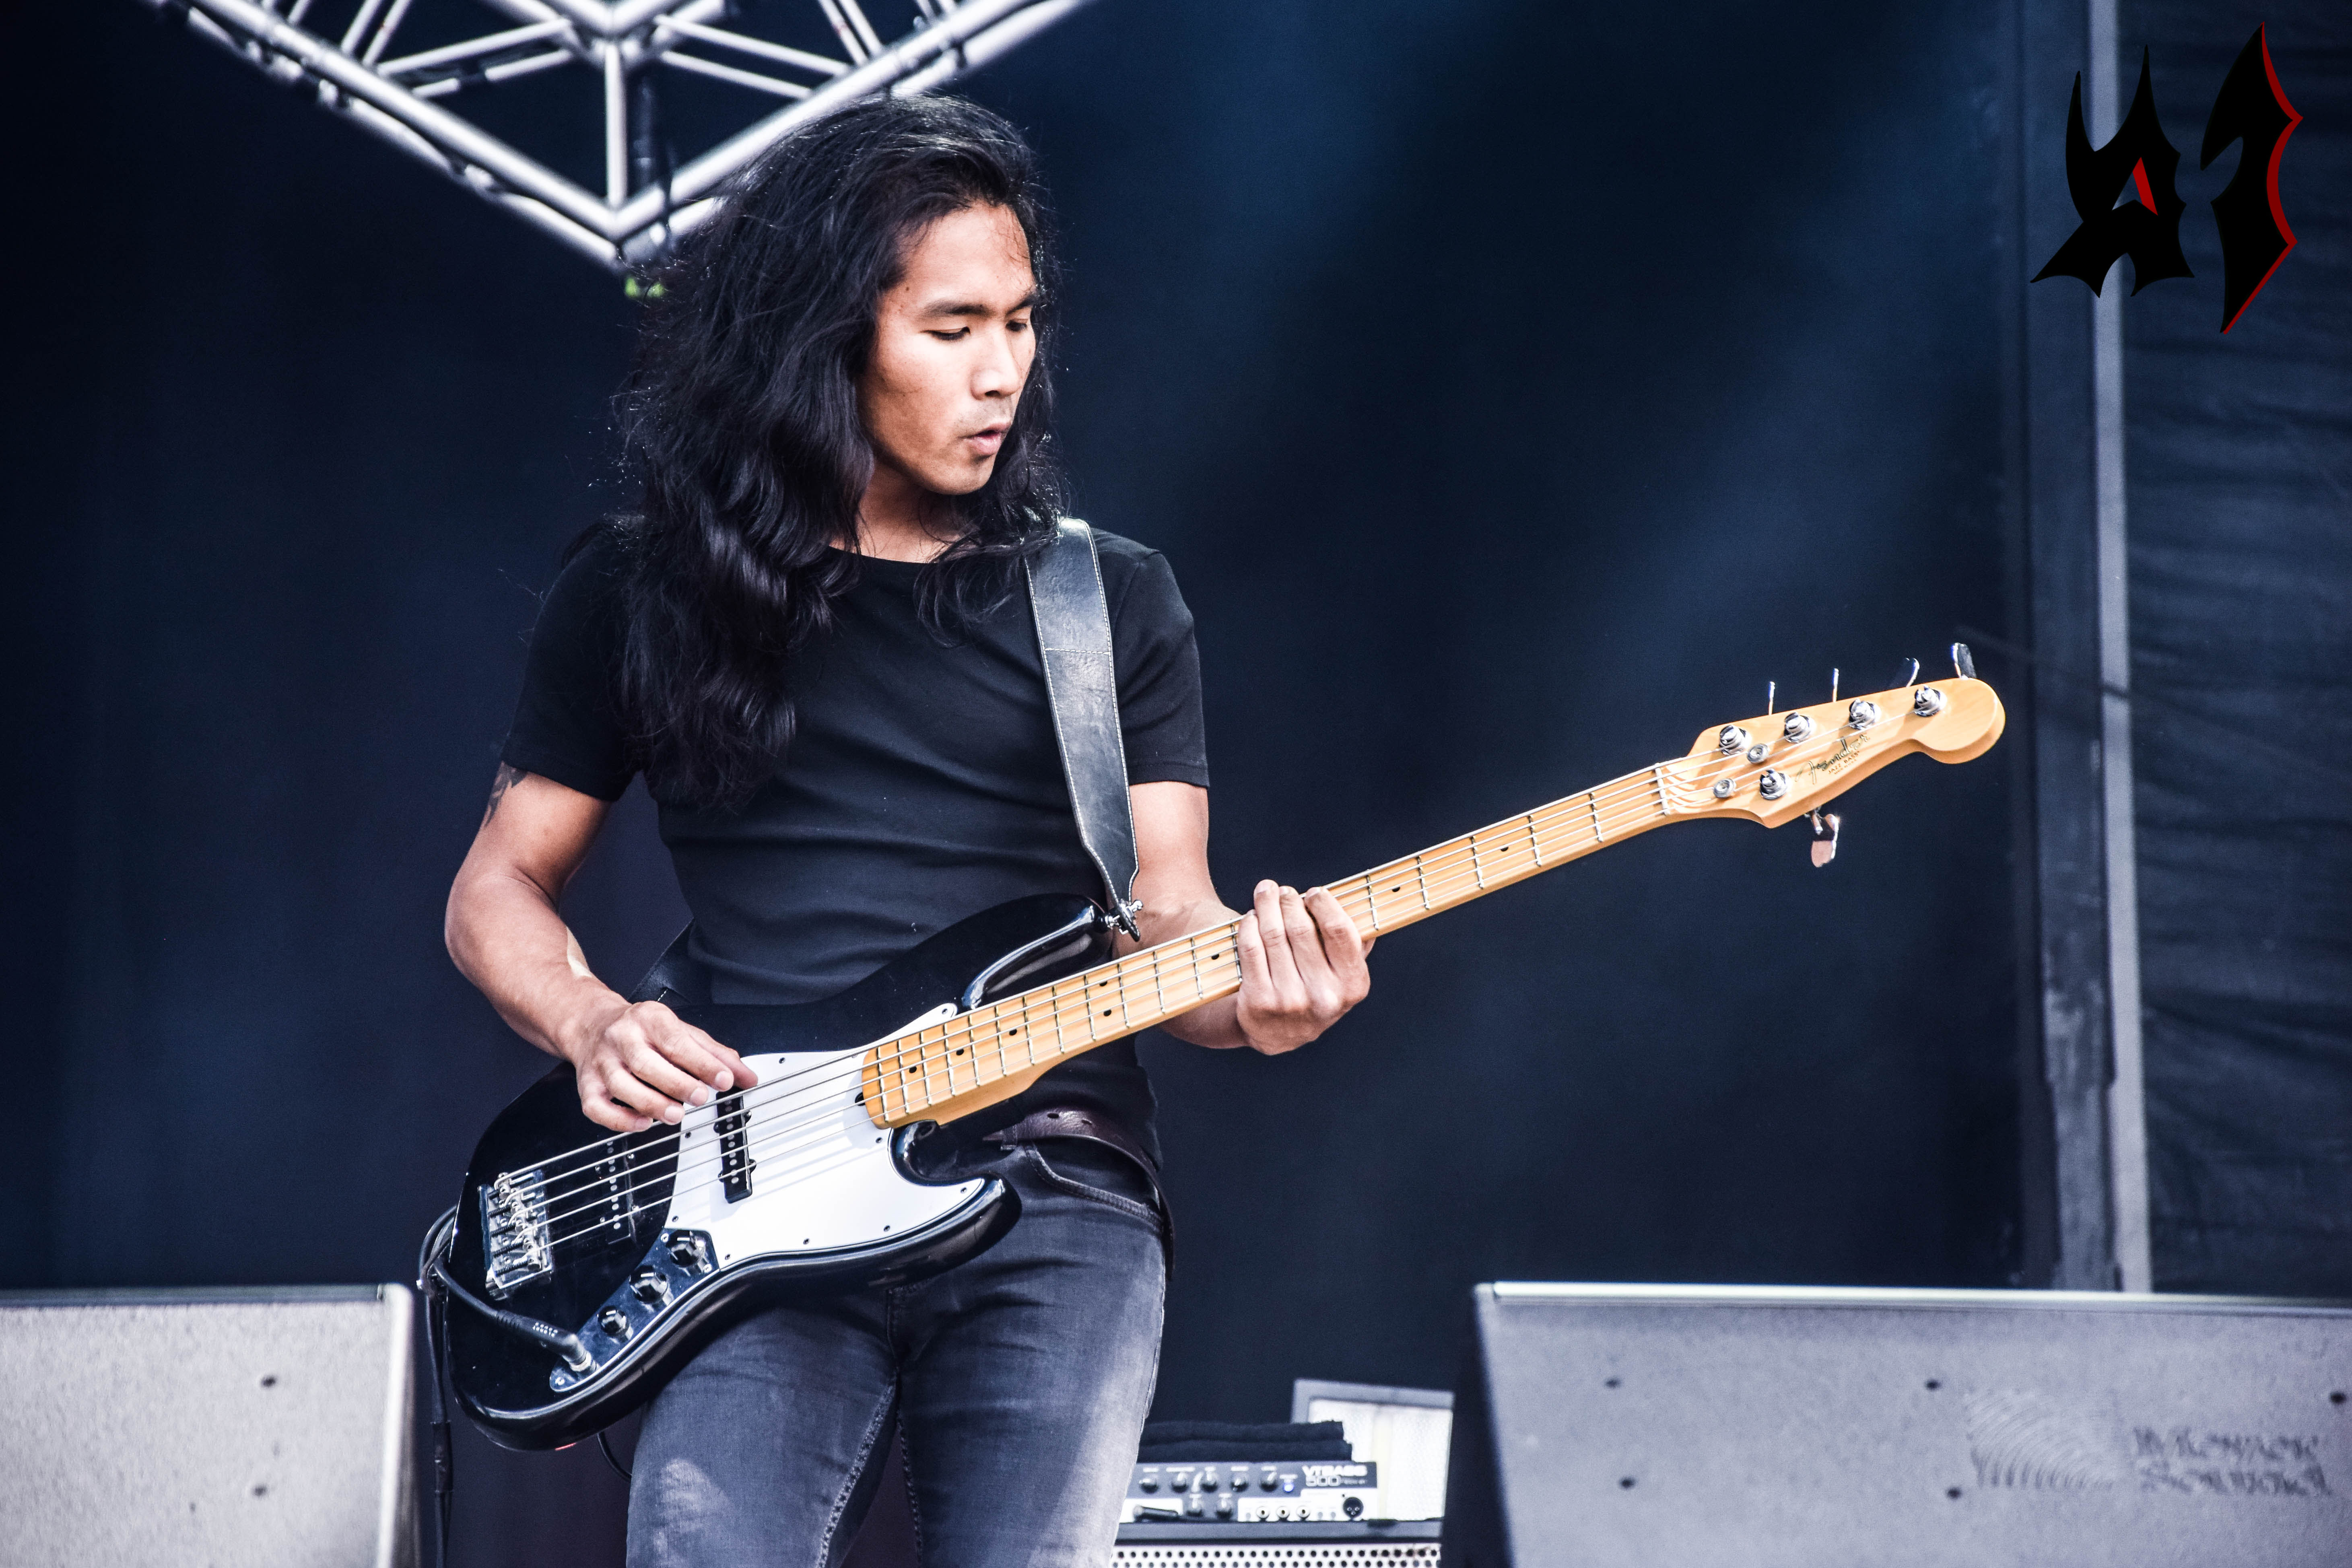 Donwload 2018 – Day 2 - Alcest 8